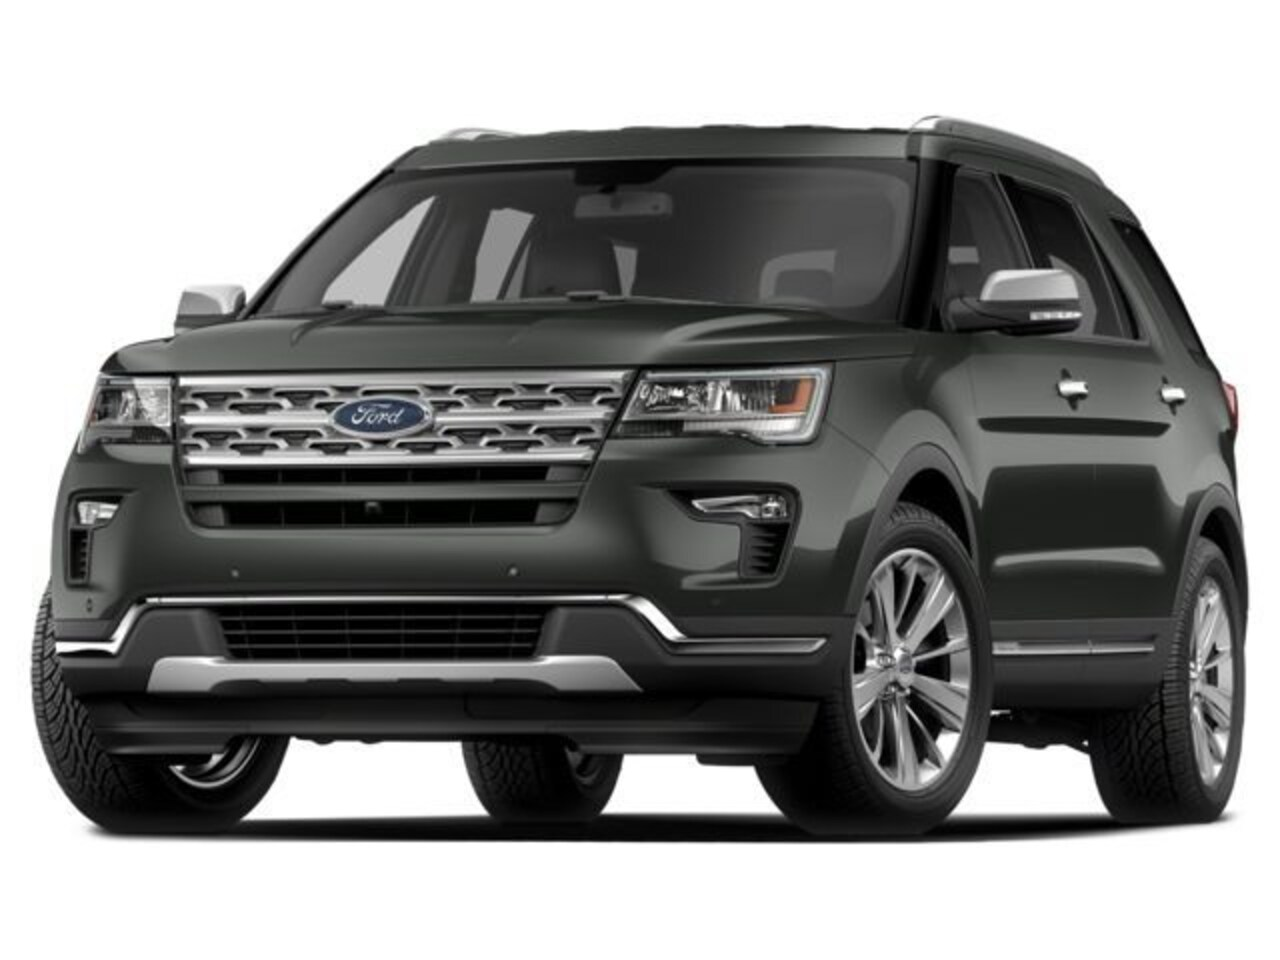 2018 Ford Explorer XLT 202A 4WD ROOF APPEARANCE SAFE SMART TECH SUV